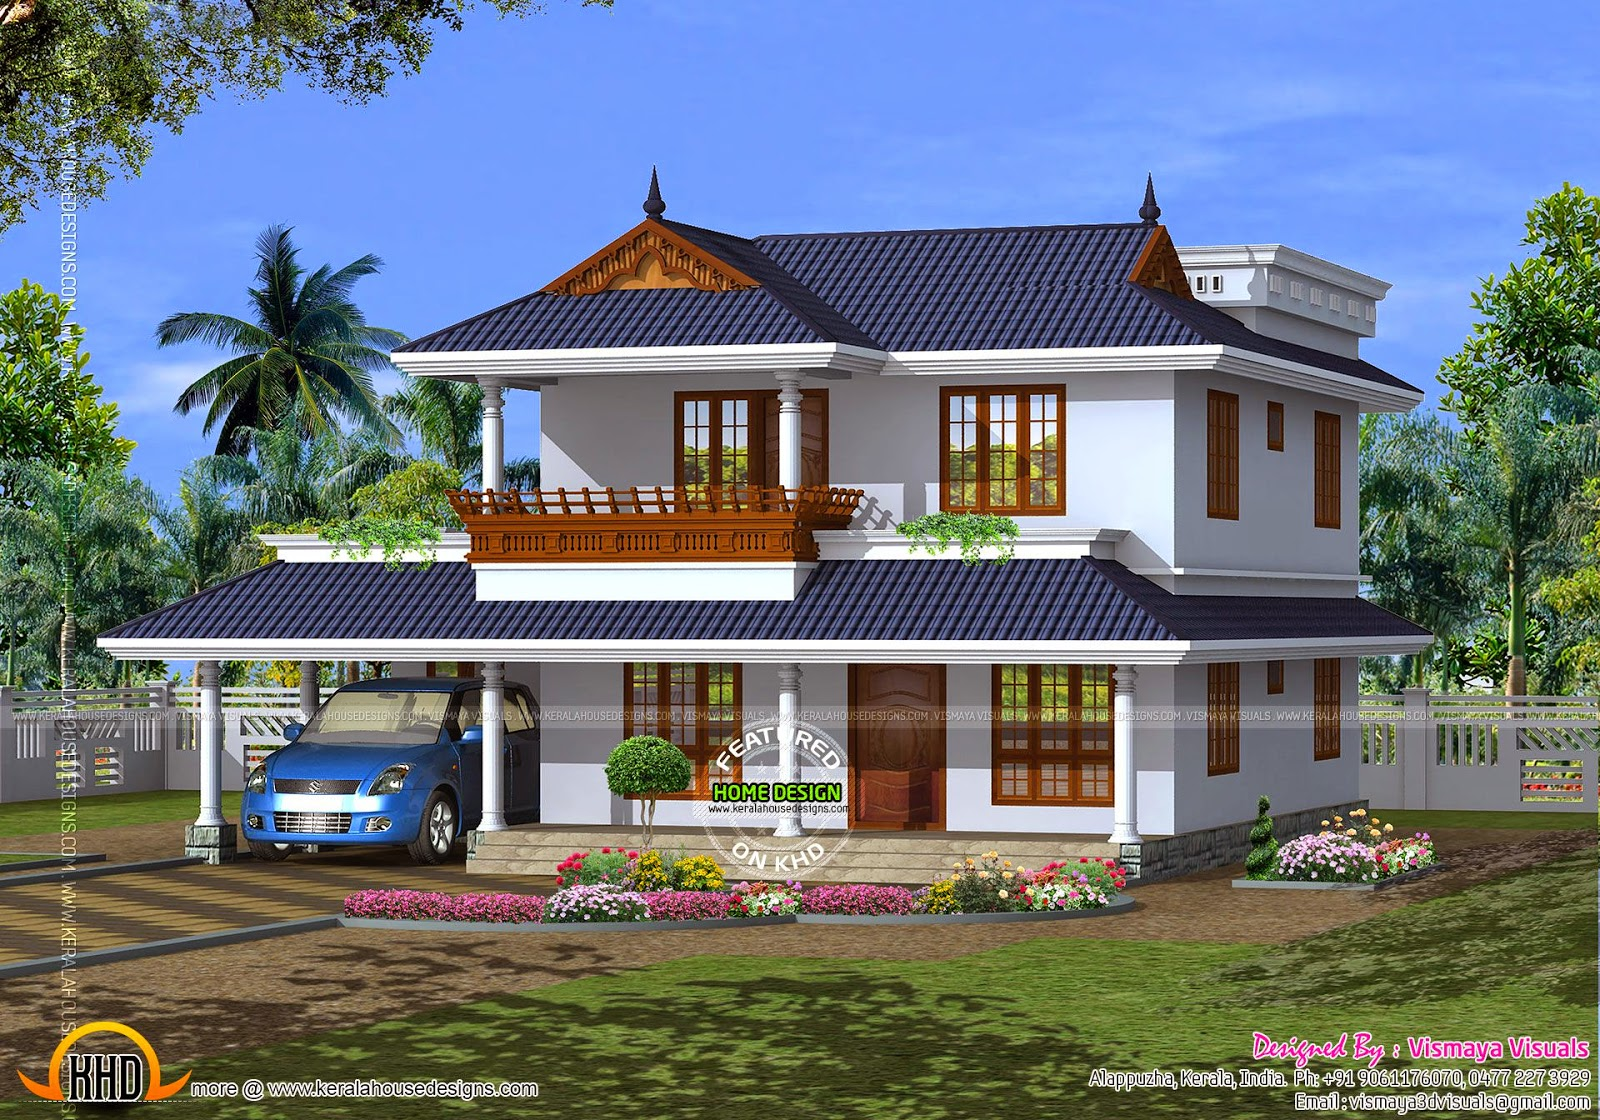 house model kerala kerala home design and floor plans On homes models and plans